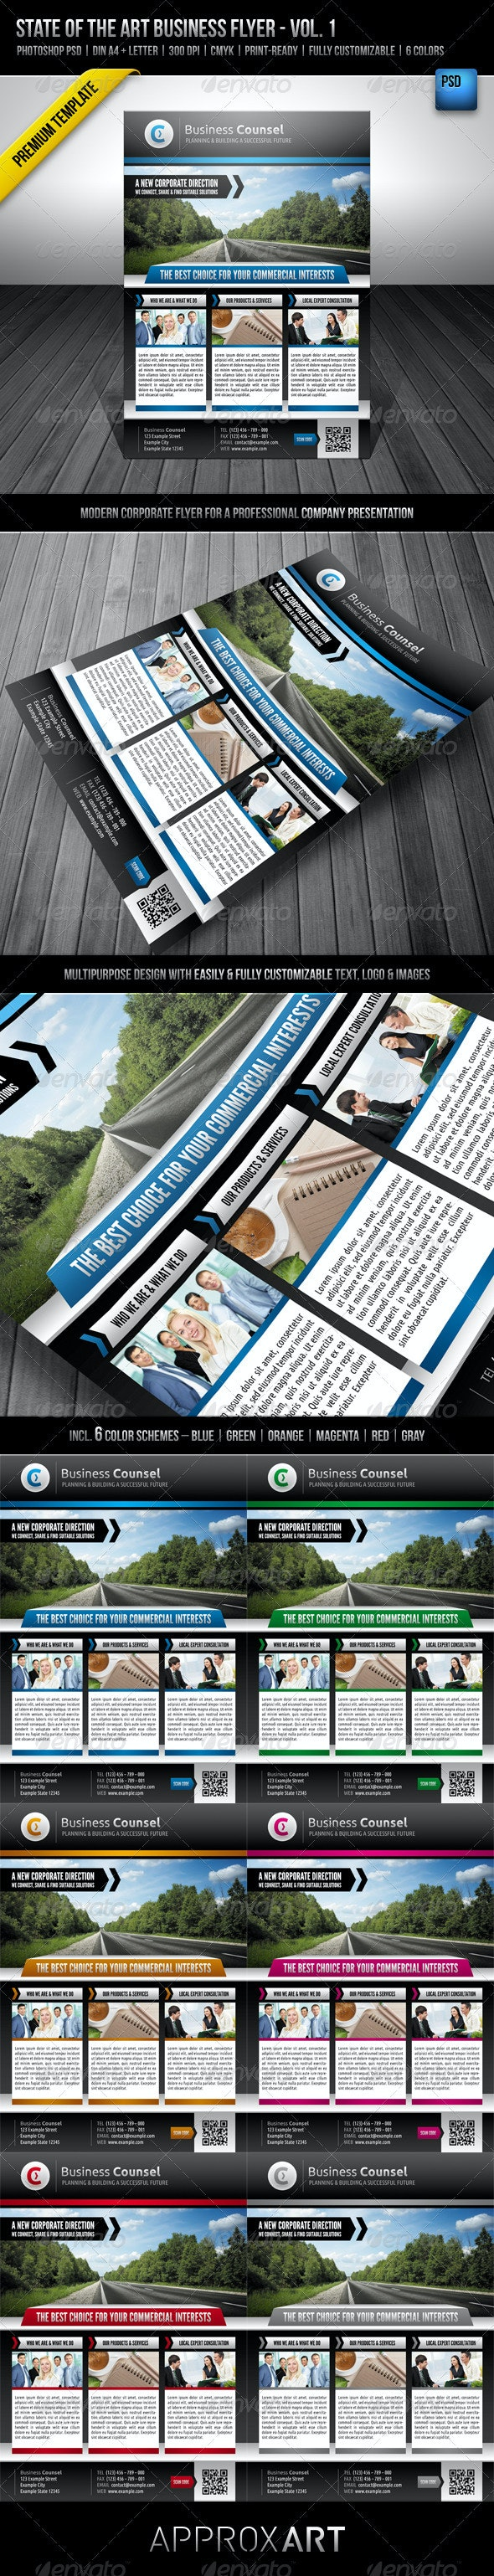 State of the Art Business Flyer - Vol. 1 - Corporate Flyers